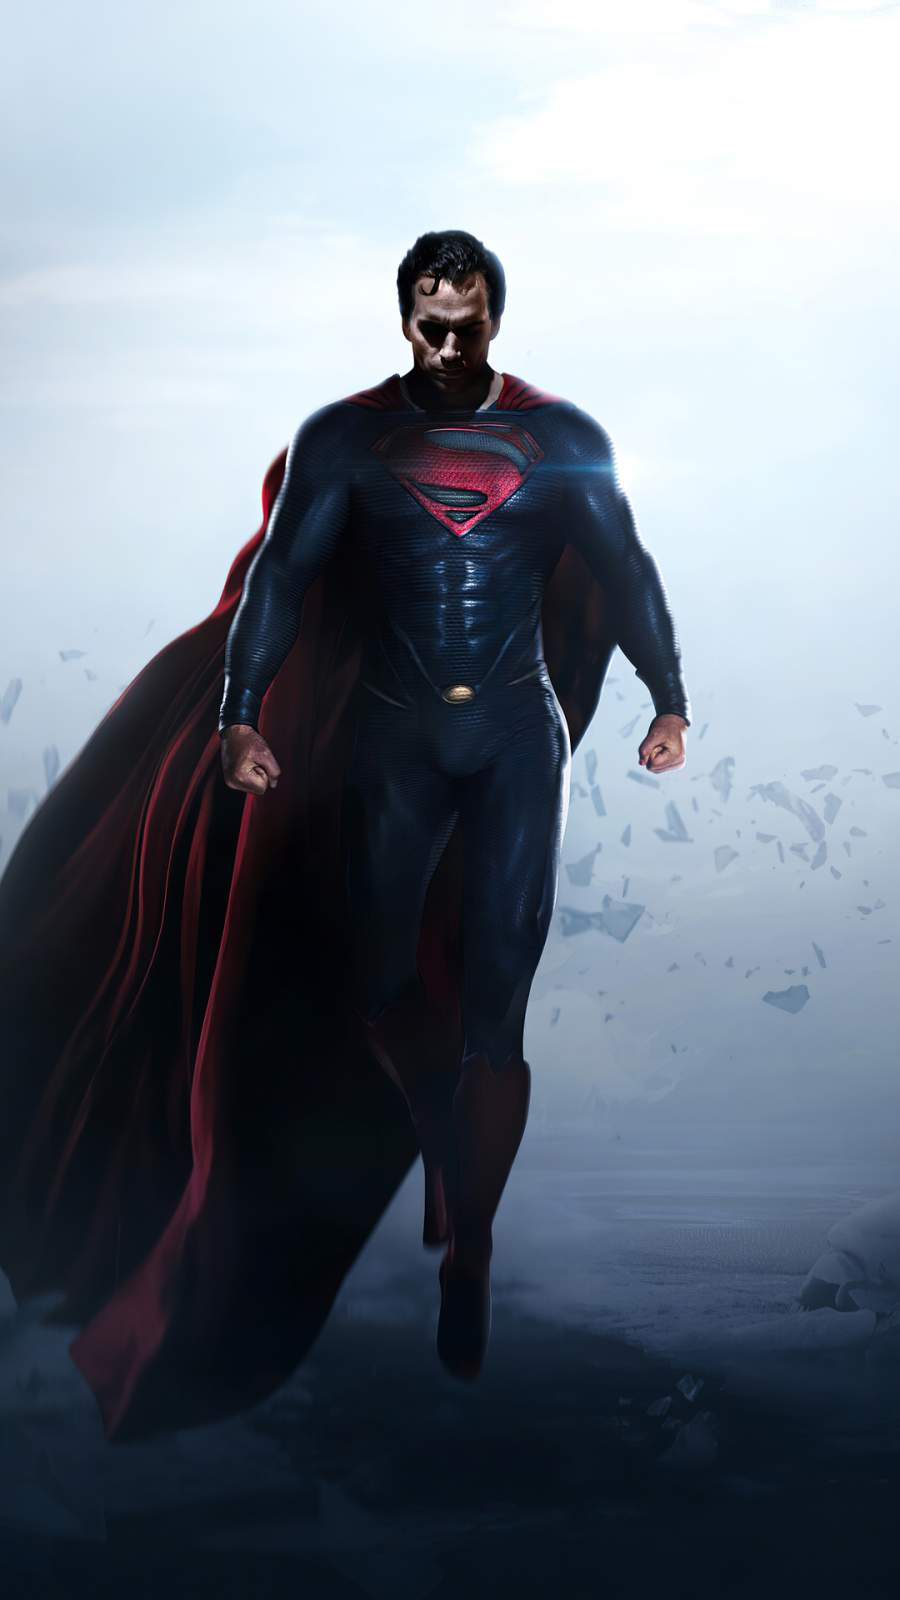 Superman x Man of Steel iPhone Wallpaper